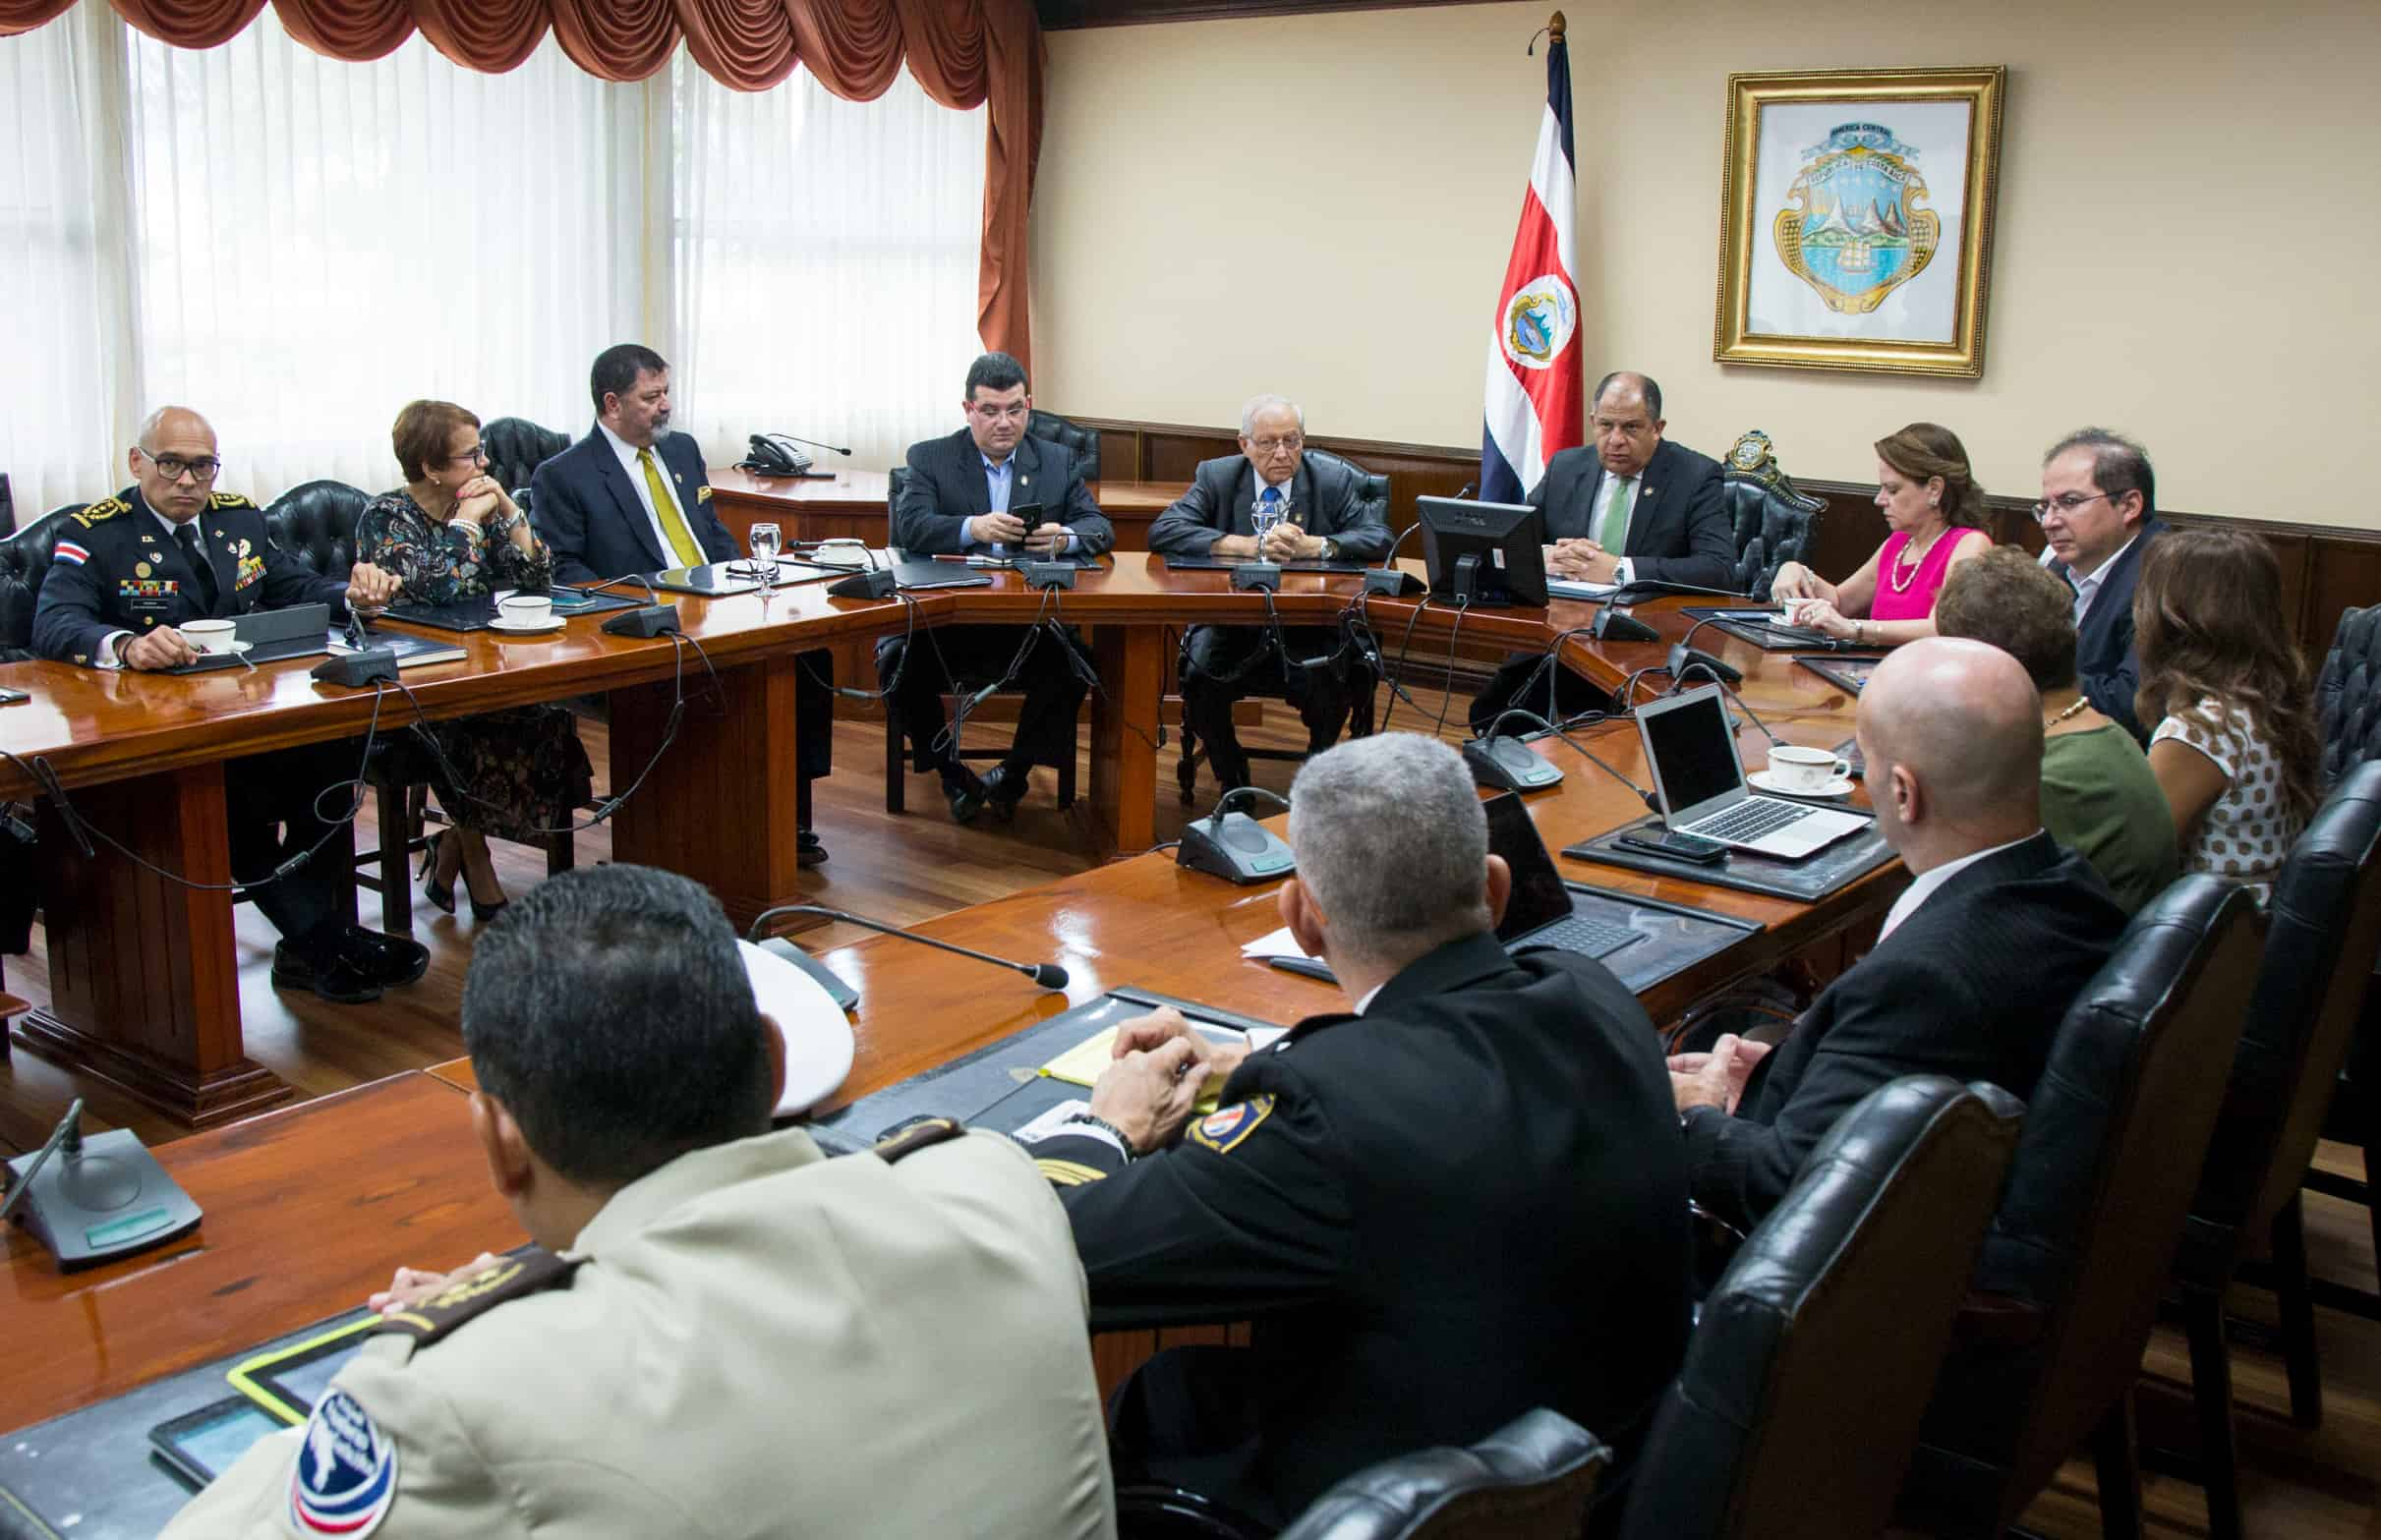 Public Security meeting at Casa Presidencial. May 17, 2017.